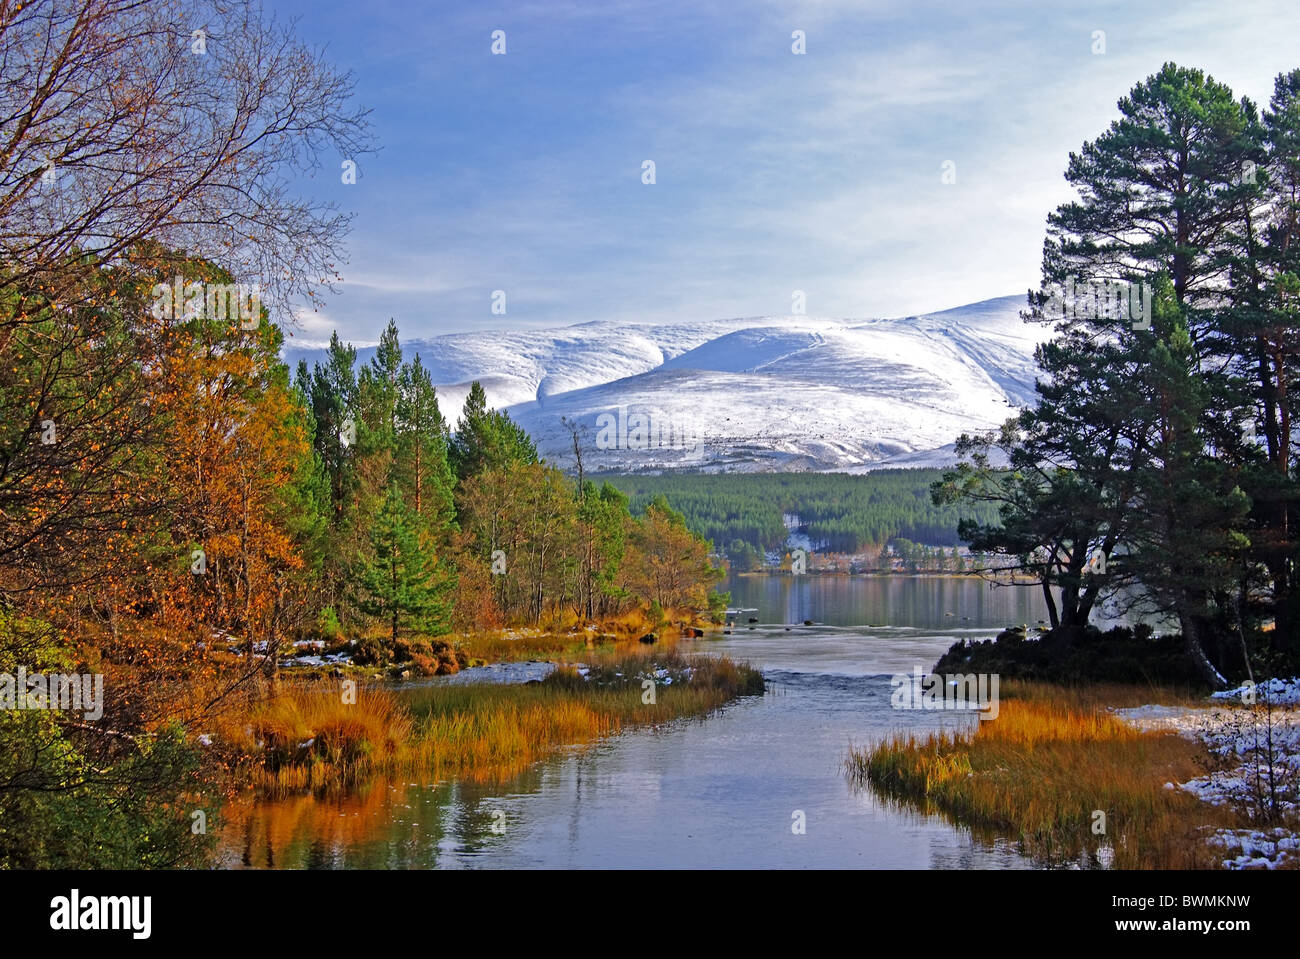 UK Scotland Highland Inverness-shire Loch Morlich and the Cairngorm Mountains in The National Park - Stock Image